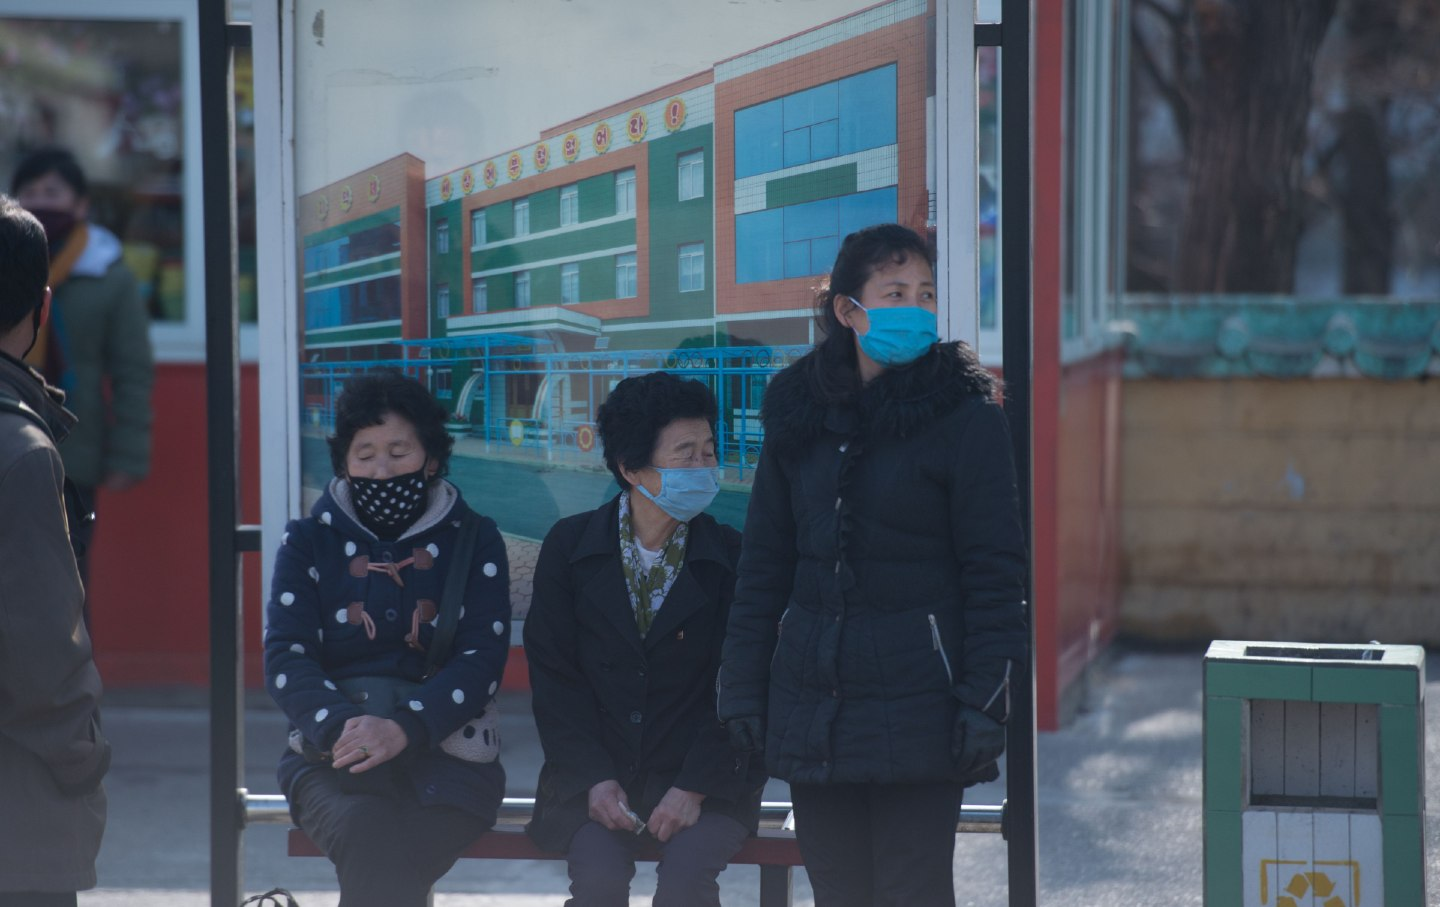 People in Pyongyang wait at a bus stop, wearing face masks.